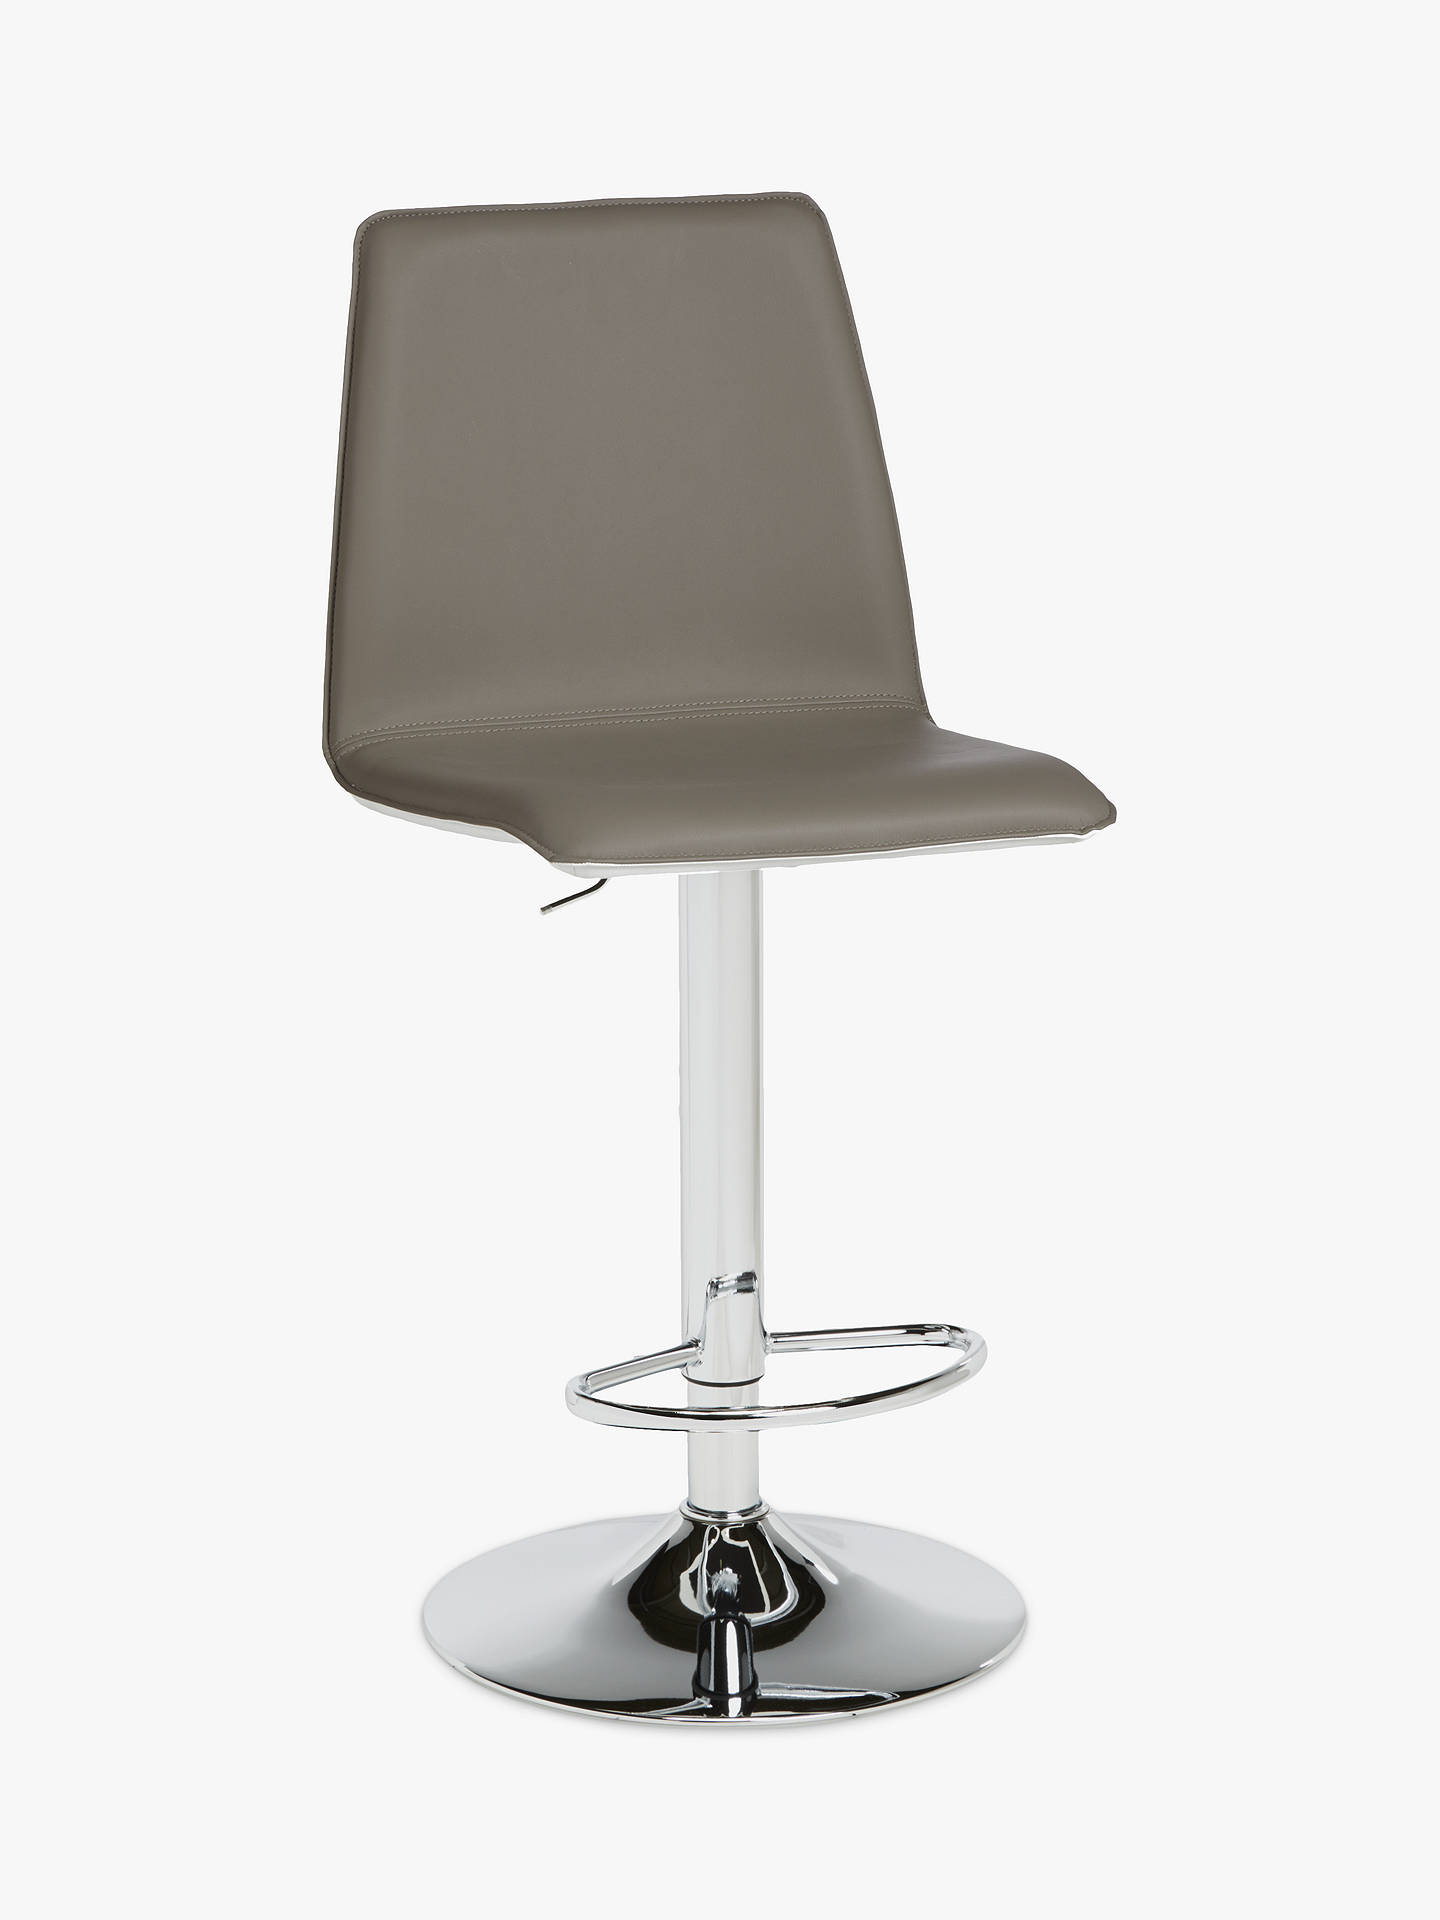 Buy John Lewis & Partners Xavier II Gas Lift Bar Chair, Taupe/Cream Online at johnlewis.com